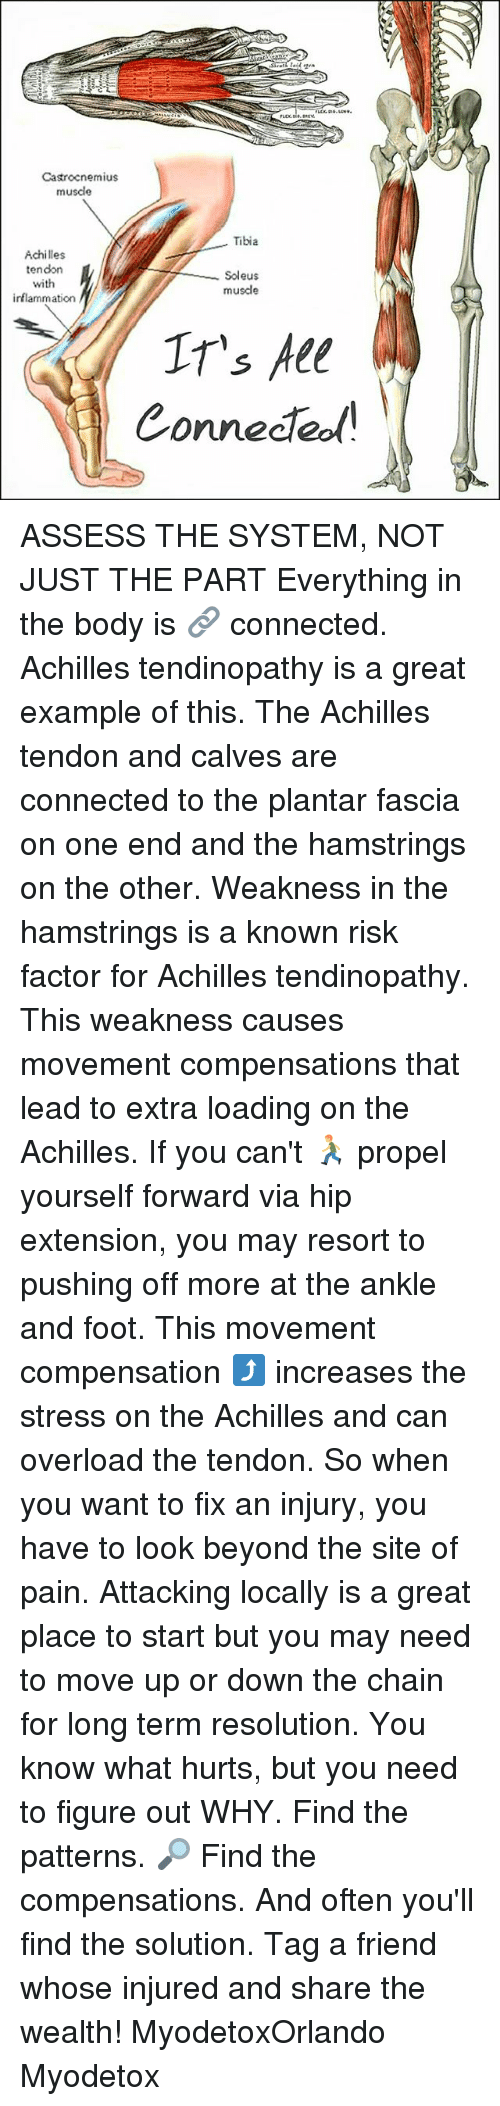 Memes, Connected, and Pain: Castrocnemius  musde  Tibia  Achilles  tendon  Soleus  with  muscle  inflammation  IT's All  Connected ASSESS THE SYSTEM, NOT JUST THE PART Everything in the body is 🔗 connected. Achilles tendinopathy is a great example of this. The Achilles tendon and calves are connected to the plantar fascia on one end and the hamstrings on the other. Weakness in the hamstrings is a known risk factor for Achilles tendinopathy. This weakness causes movement compensations that lead to extra loading on the Achilles. If you can't 🏃 propel yourself forward via hip extension, you may resort to pushing off more at the ankle and foot. This movement compensation ⤴ increases the stress on the Achilles and can overload the tendon. So when you want to fix an injury, you have to look beyond the site of pain. Attacking locally is a great place to start but you may need to move up or down the chain for long term resolution. You know what hurts, but you need to figure out WHY. Find the patterns. 🔎 Find the compensations. And often you'll find the solution. Tag a friend whose injured and share the wealth! MyodetoxOrlando Myodetox